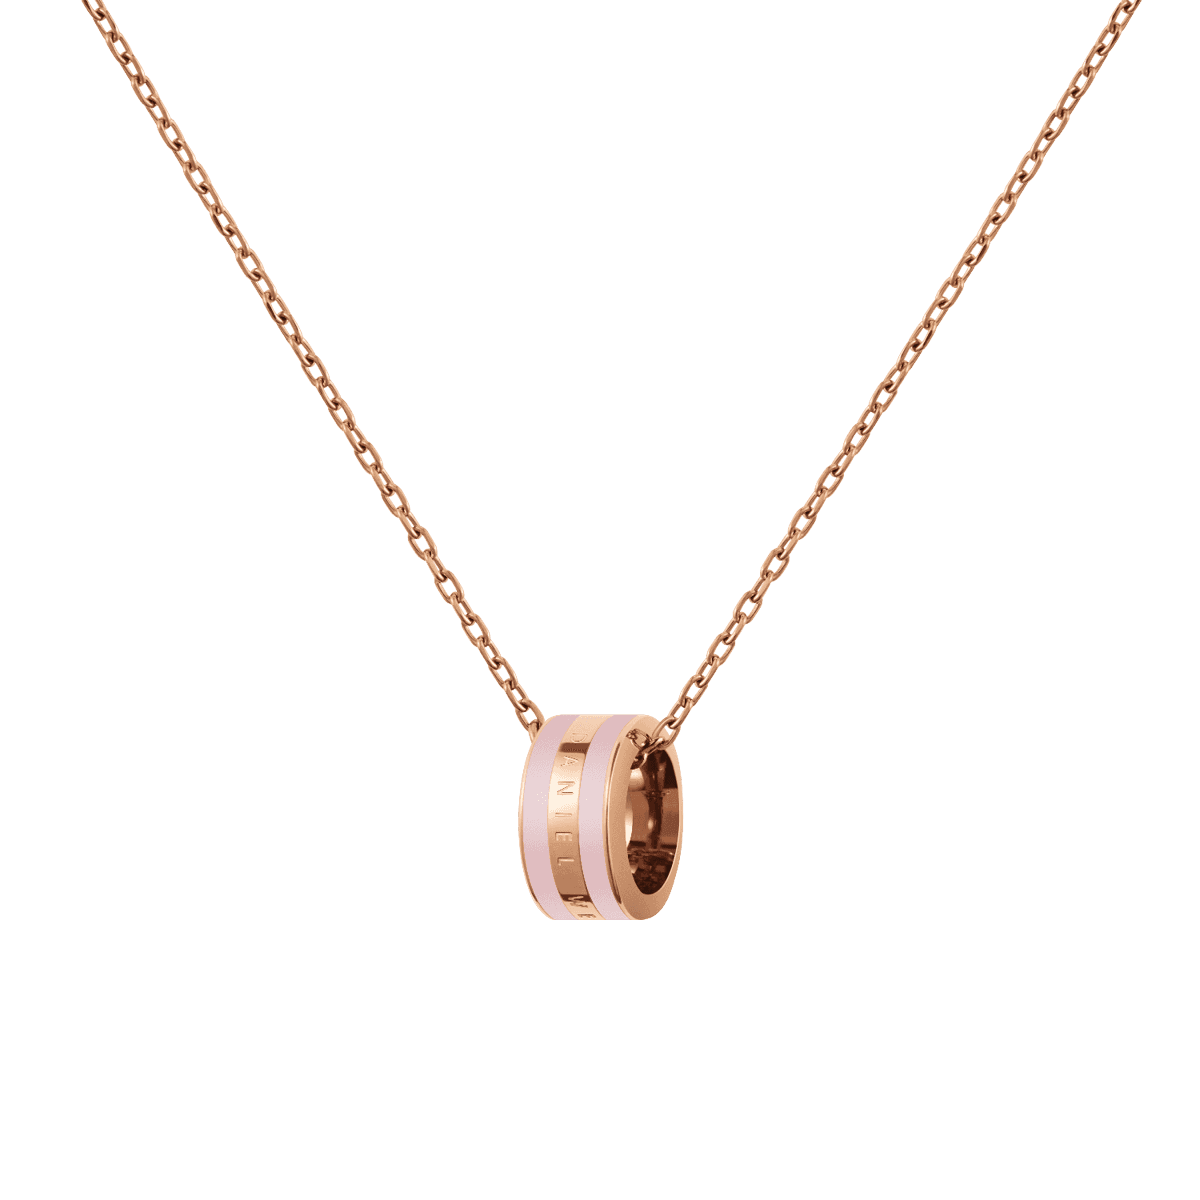 Emalie Necklace Rose Gold Cherry Blossom One Size